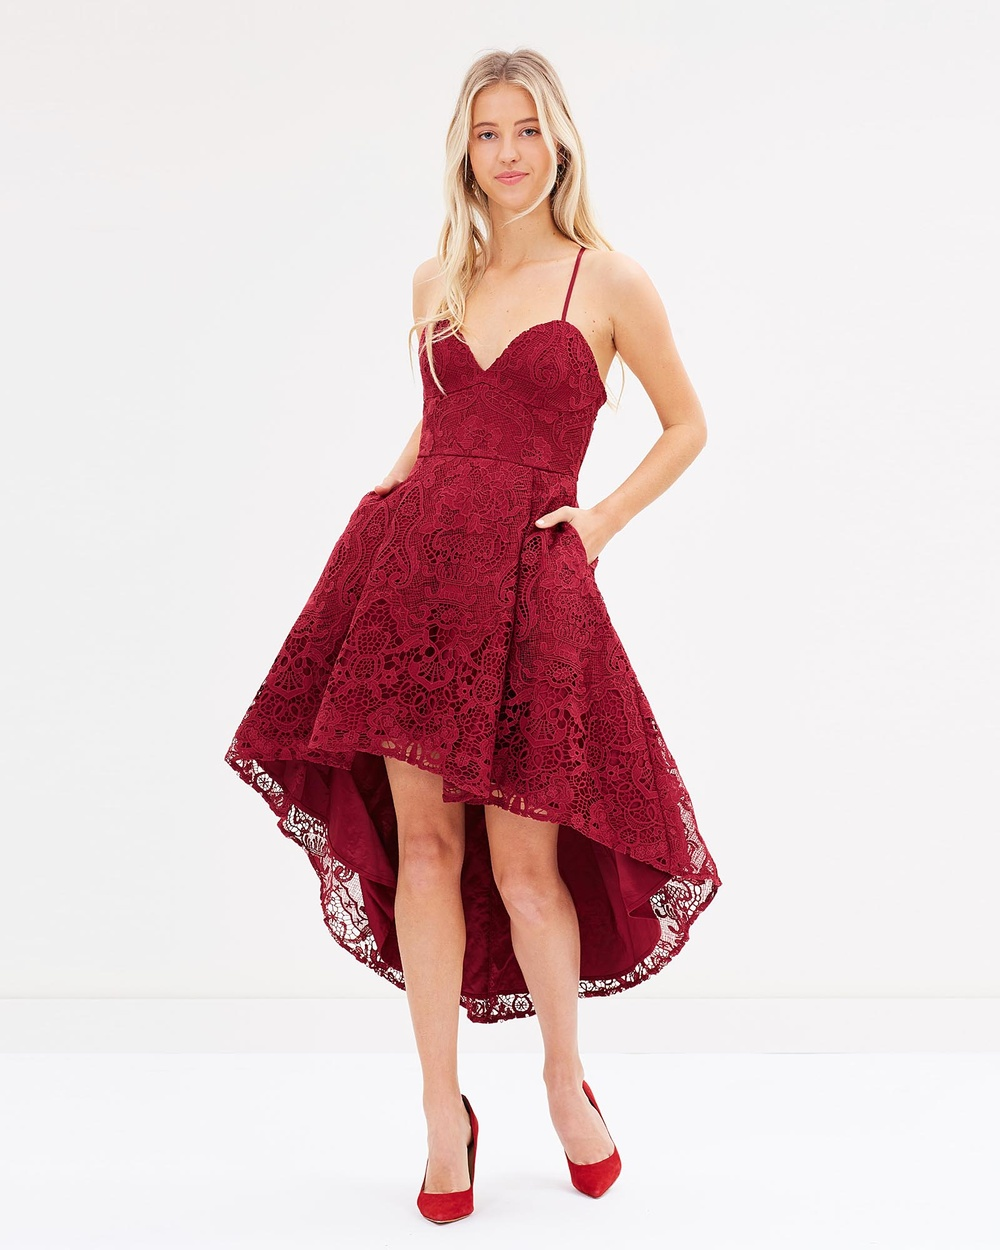 Twosister's The Label Marilyn Dress Bridesmaid Dresses Burgundy Marilyn Dress